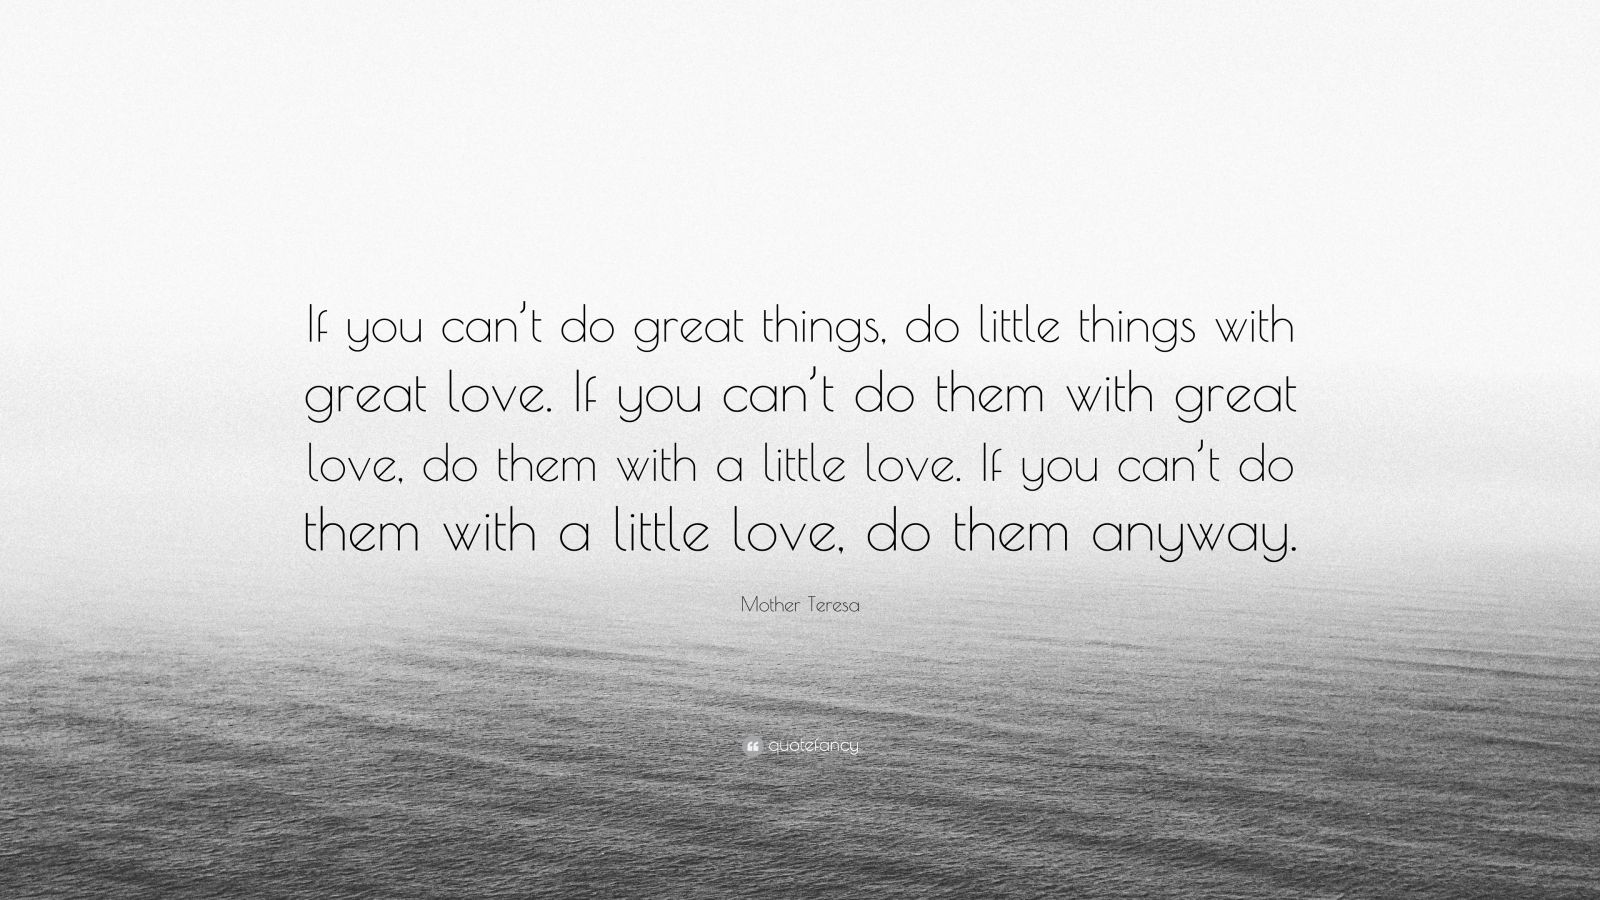 """Mother Teresa Quote: """"If you can't do great things, do little things with great love. If you can't do them with great love, do them with a little love. If you can't do them with a little love, do them anyway."""""""